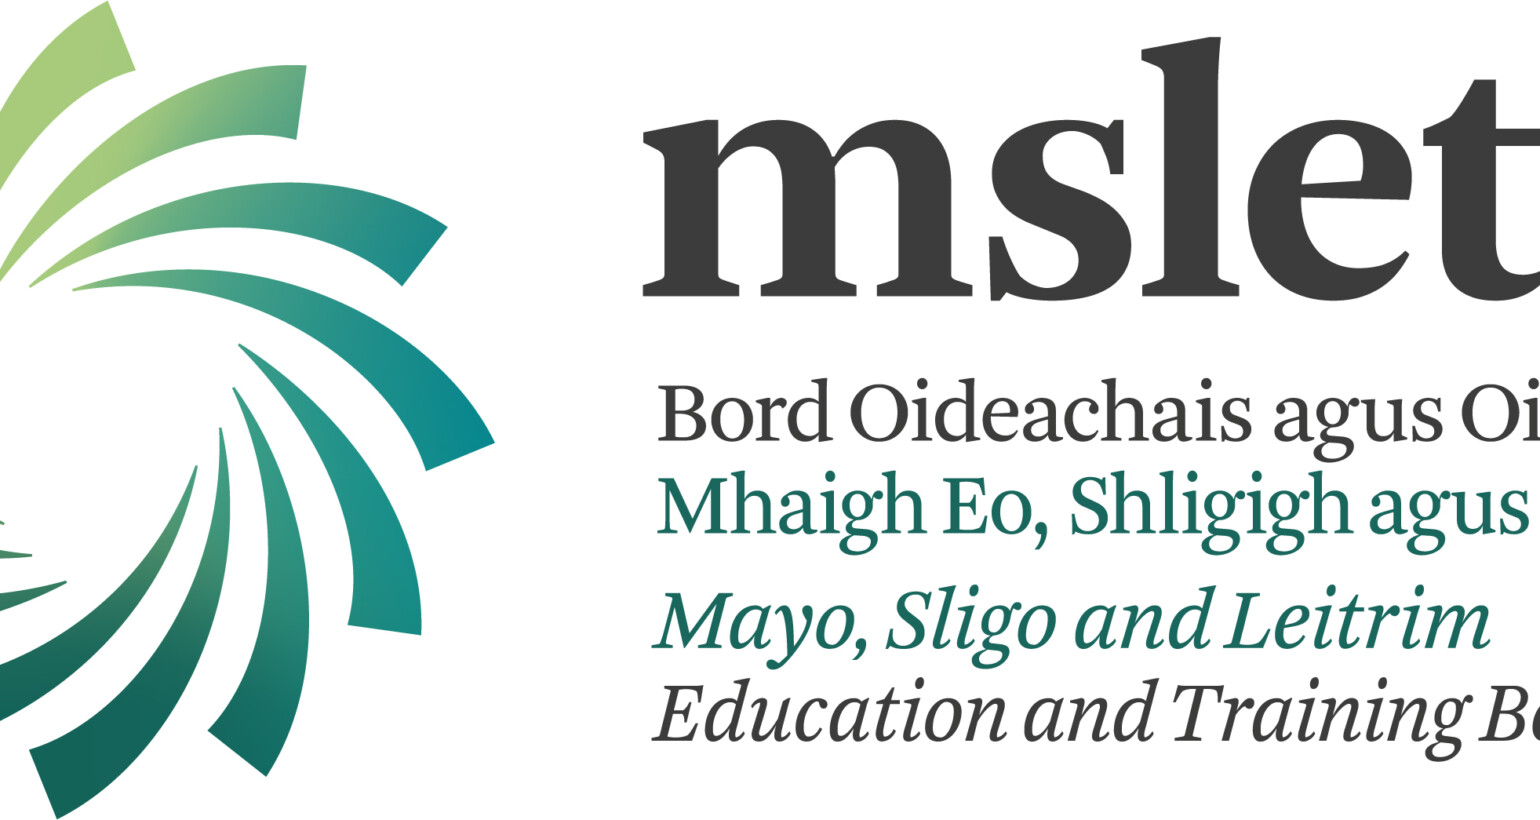 New Mayo College of Further Education and Training Announced.